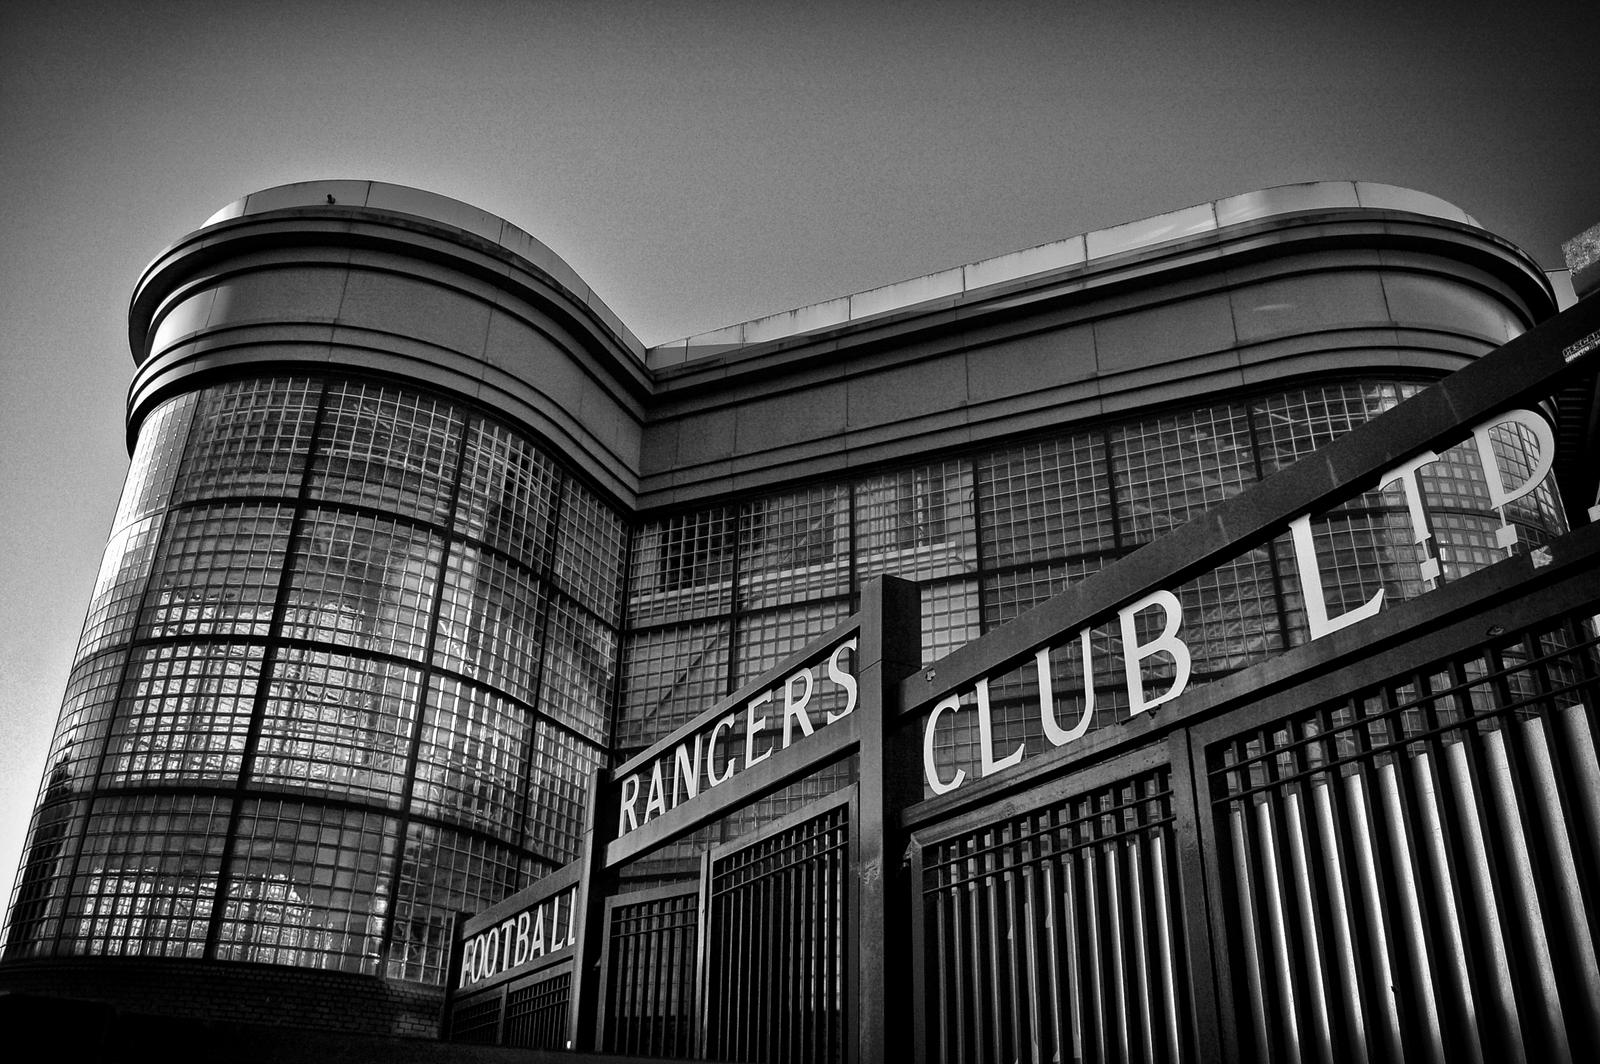 Copland Road Gates, Ibrox Stadium. by davidjearly